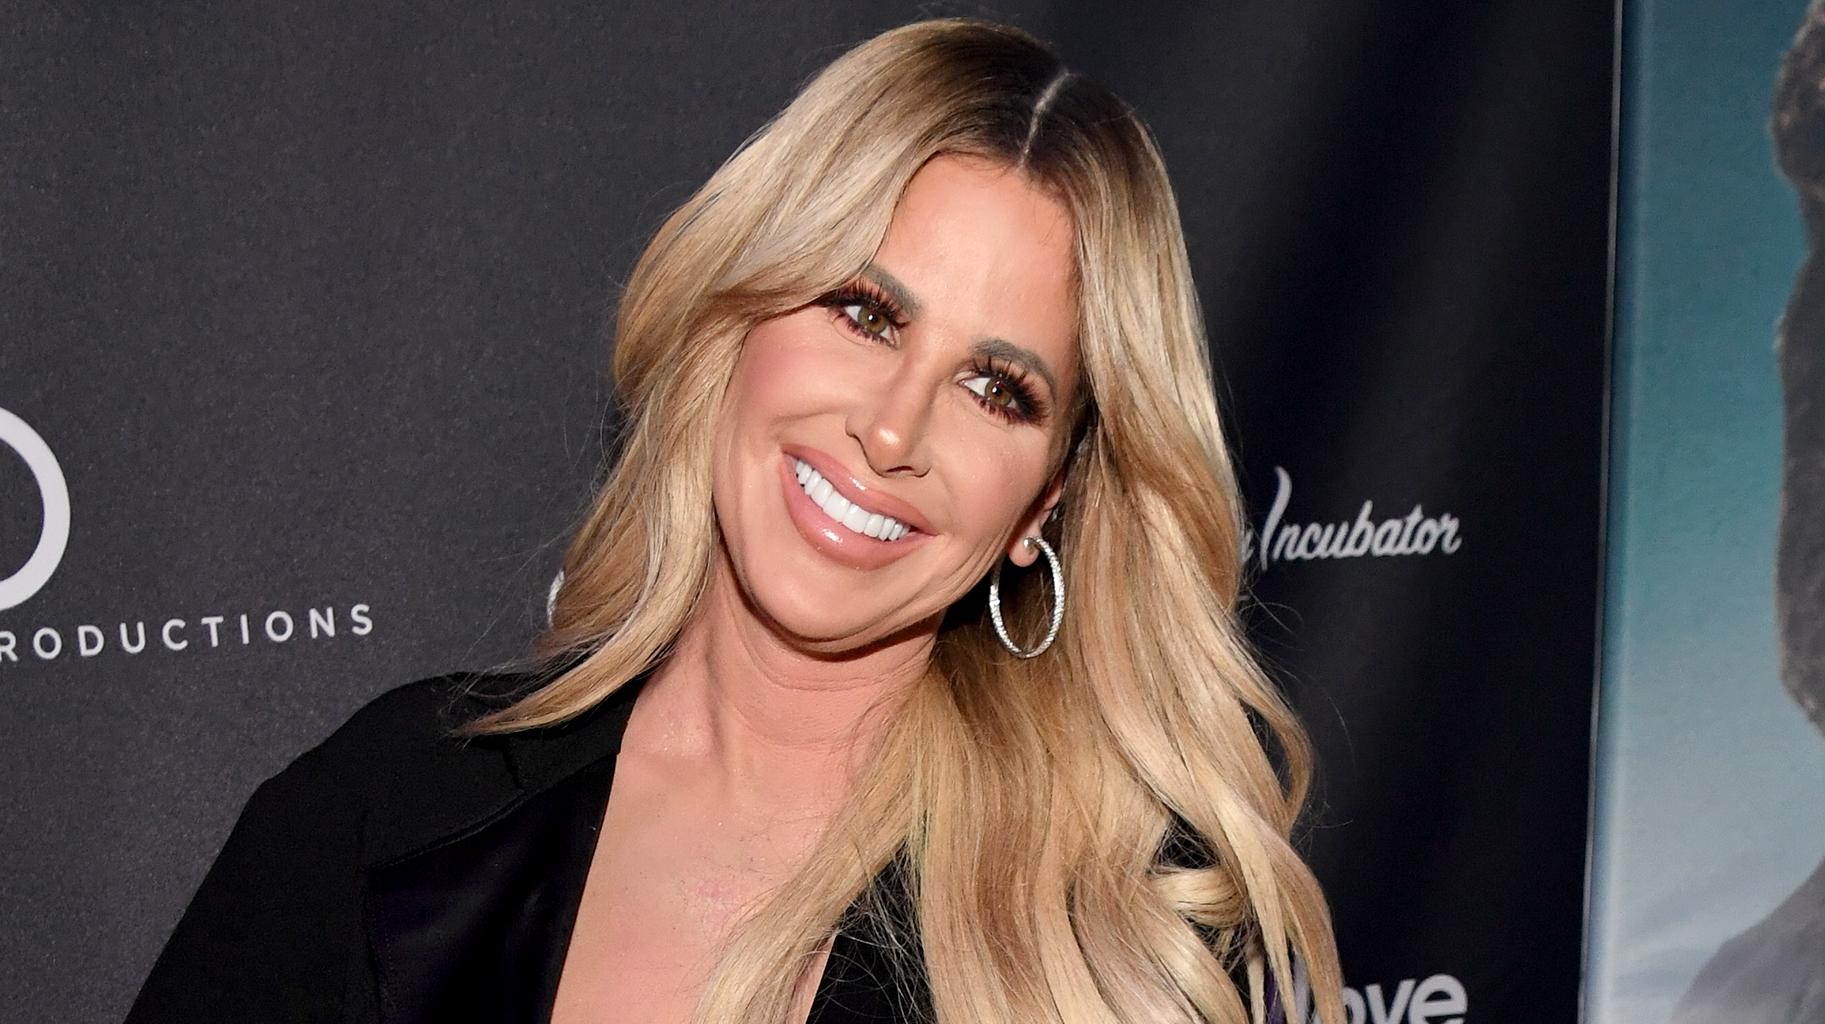 Kim Zolciak Slammed After Showing Off Her Nightmare Inducing New Pout - Has She Gone Too Far With The Lip Injections?